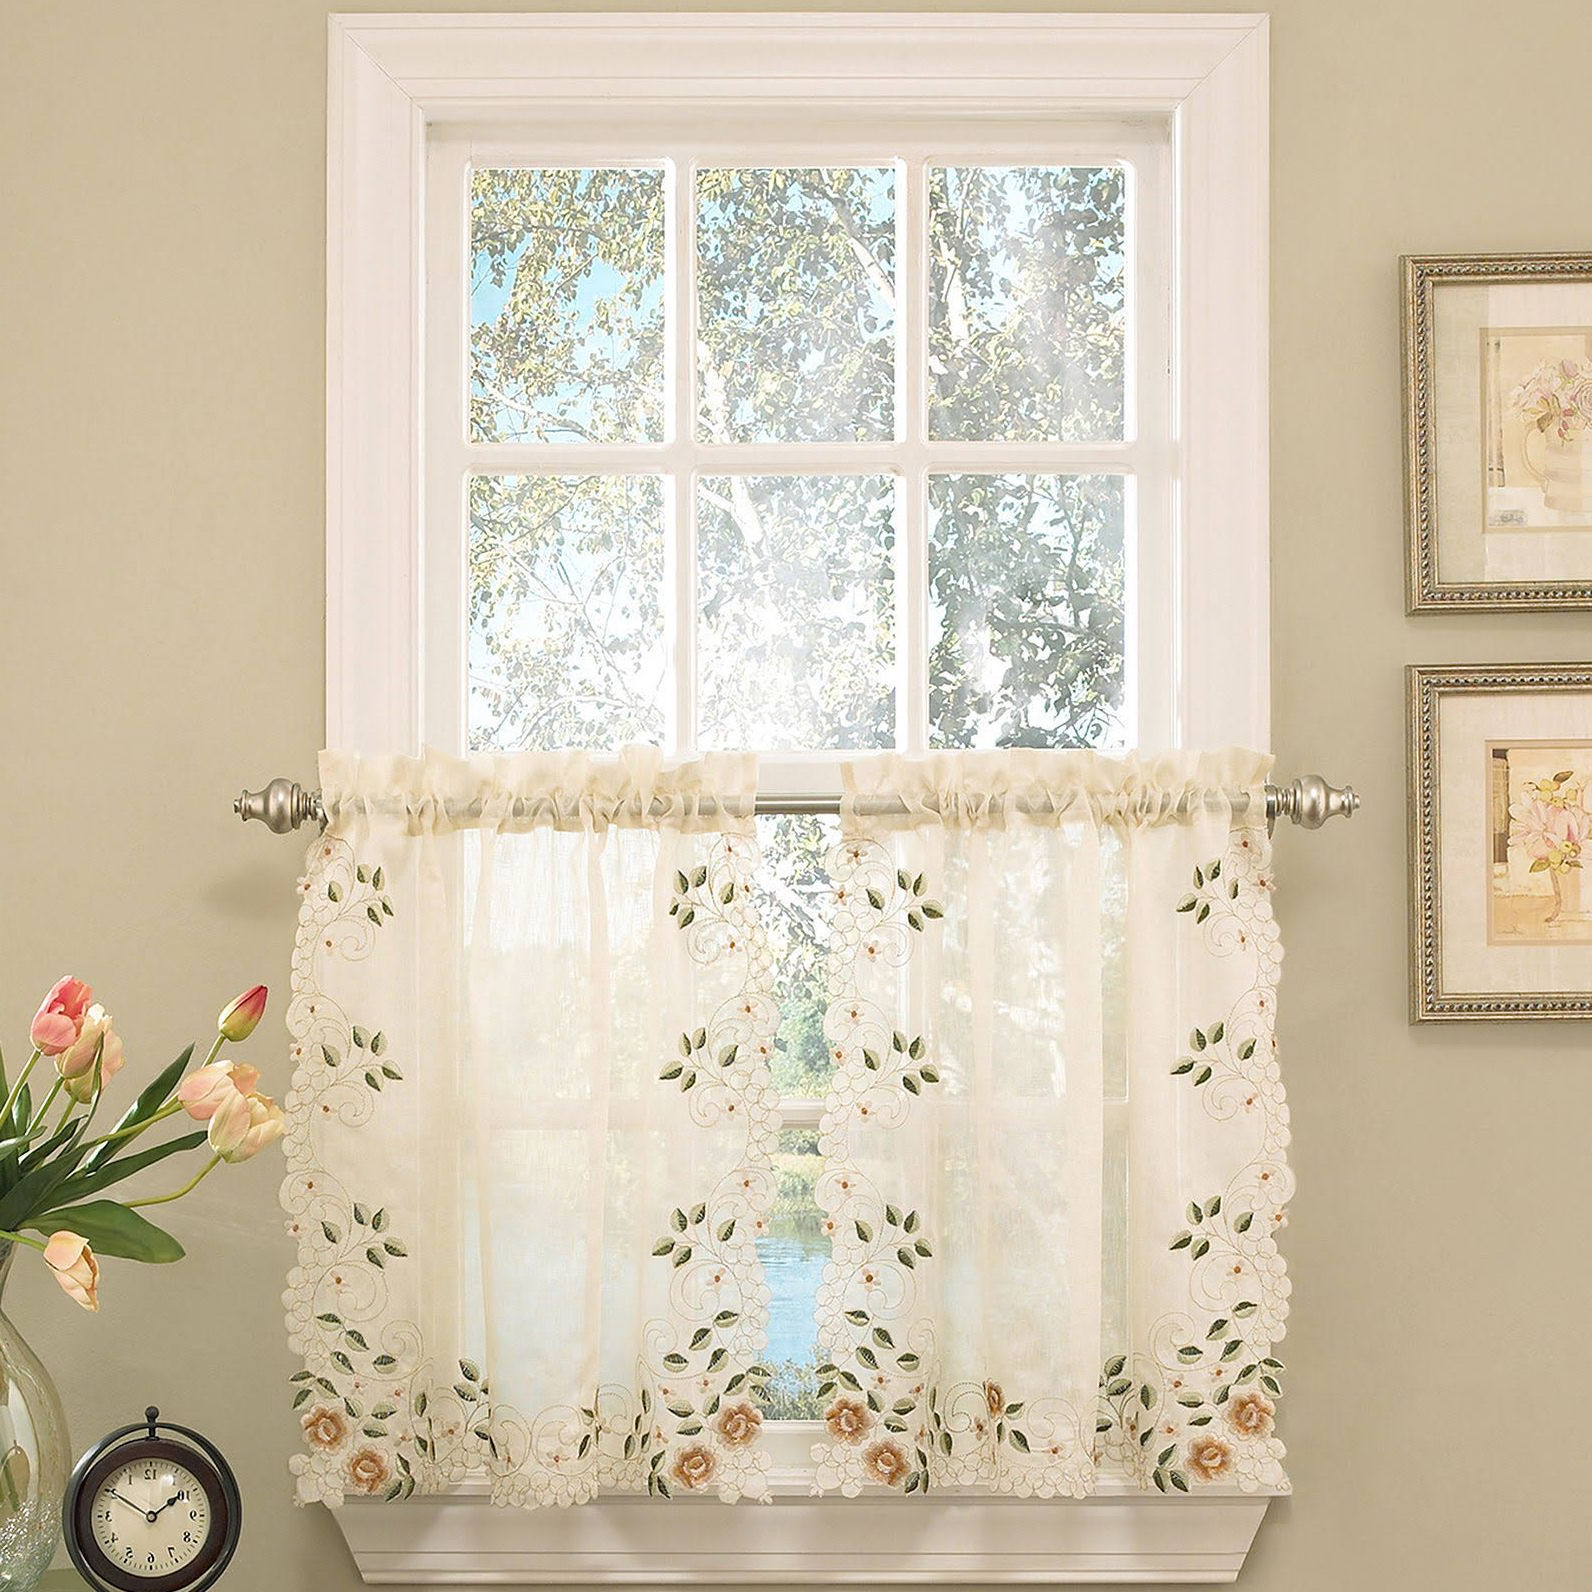 2021 Old World Floral Embroidered Sheer Kitchen Curtain Parts In Floral Embroidered Sheer Kitchen Curtain Tiers, Swags And Valances (View 4 of 20)